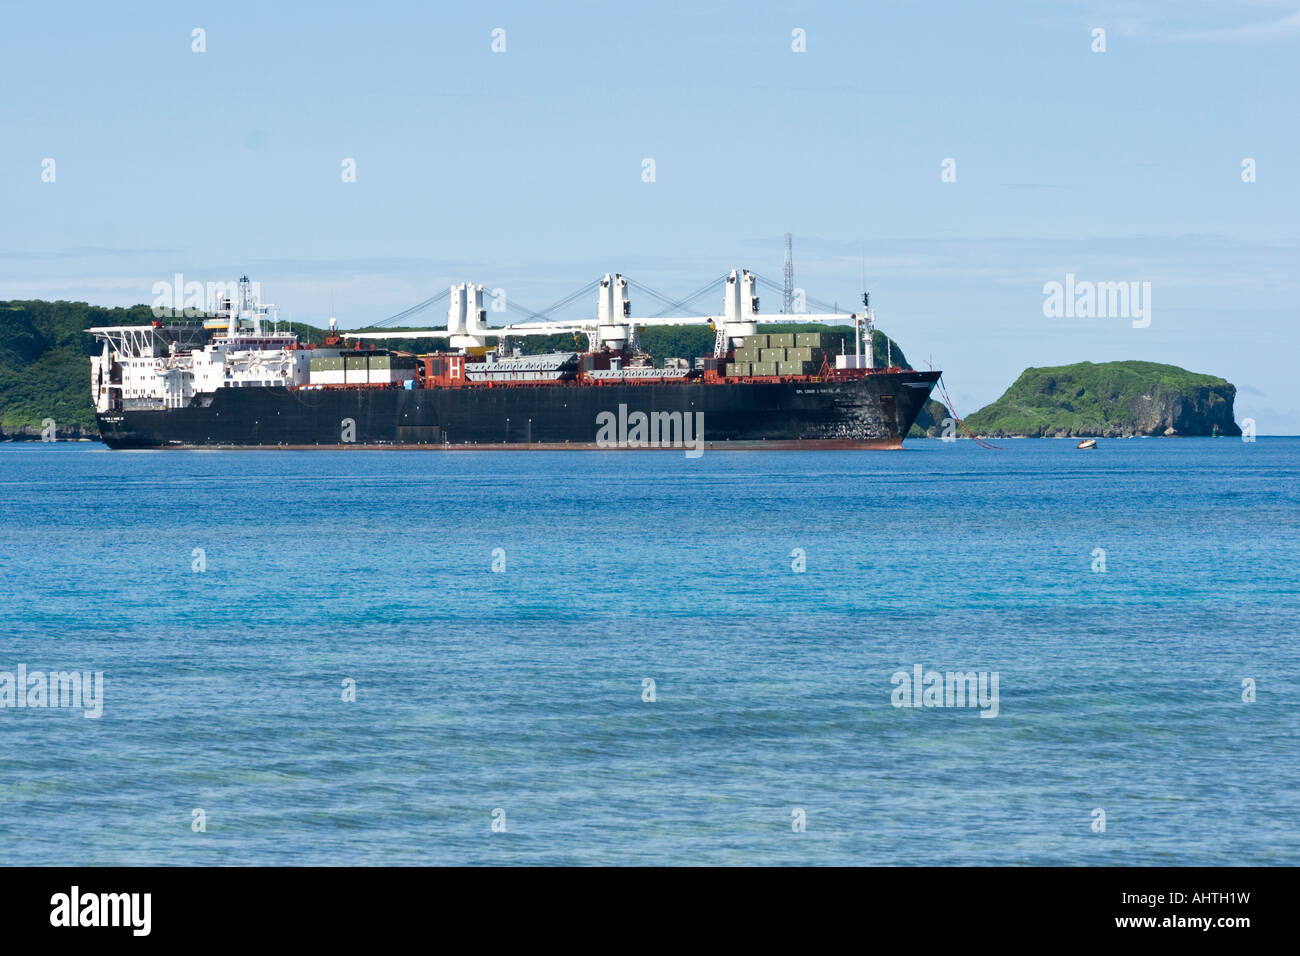 Cpl Louis J Halge Jr Military Freighter Apra Harbor Guam Stock Photo